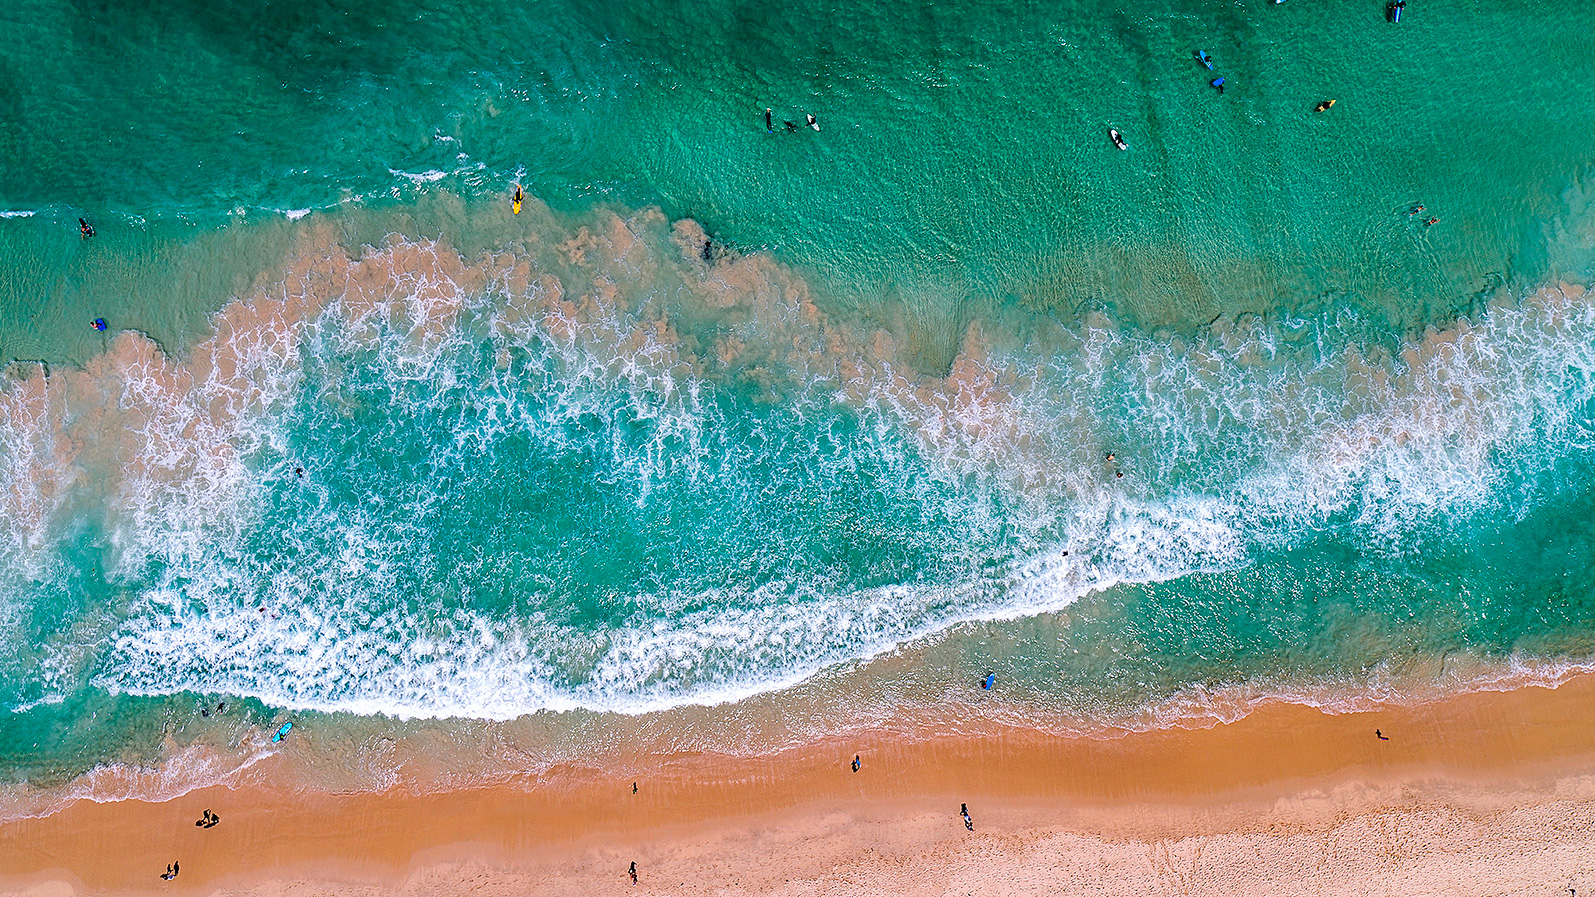 001 - Jason Mazur - 'Scarborough Beach Aerial'